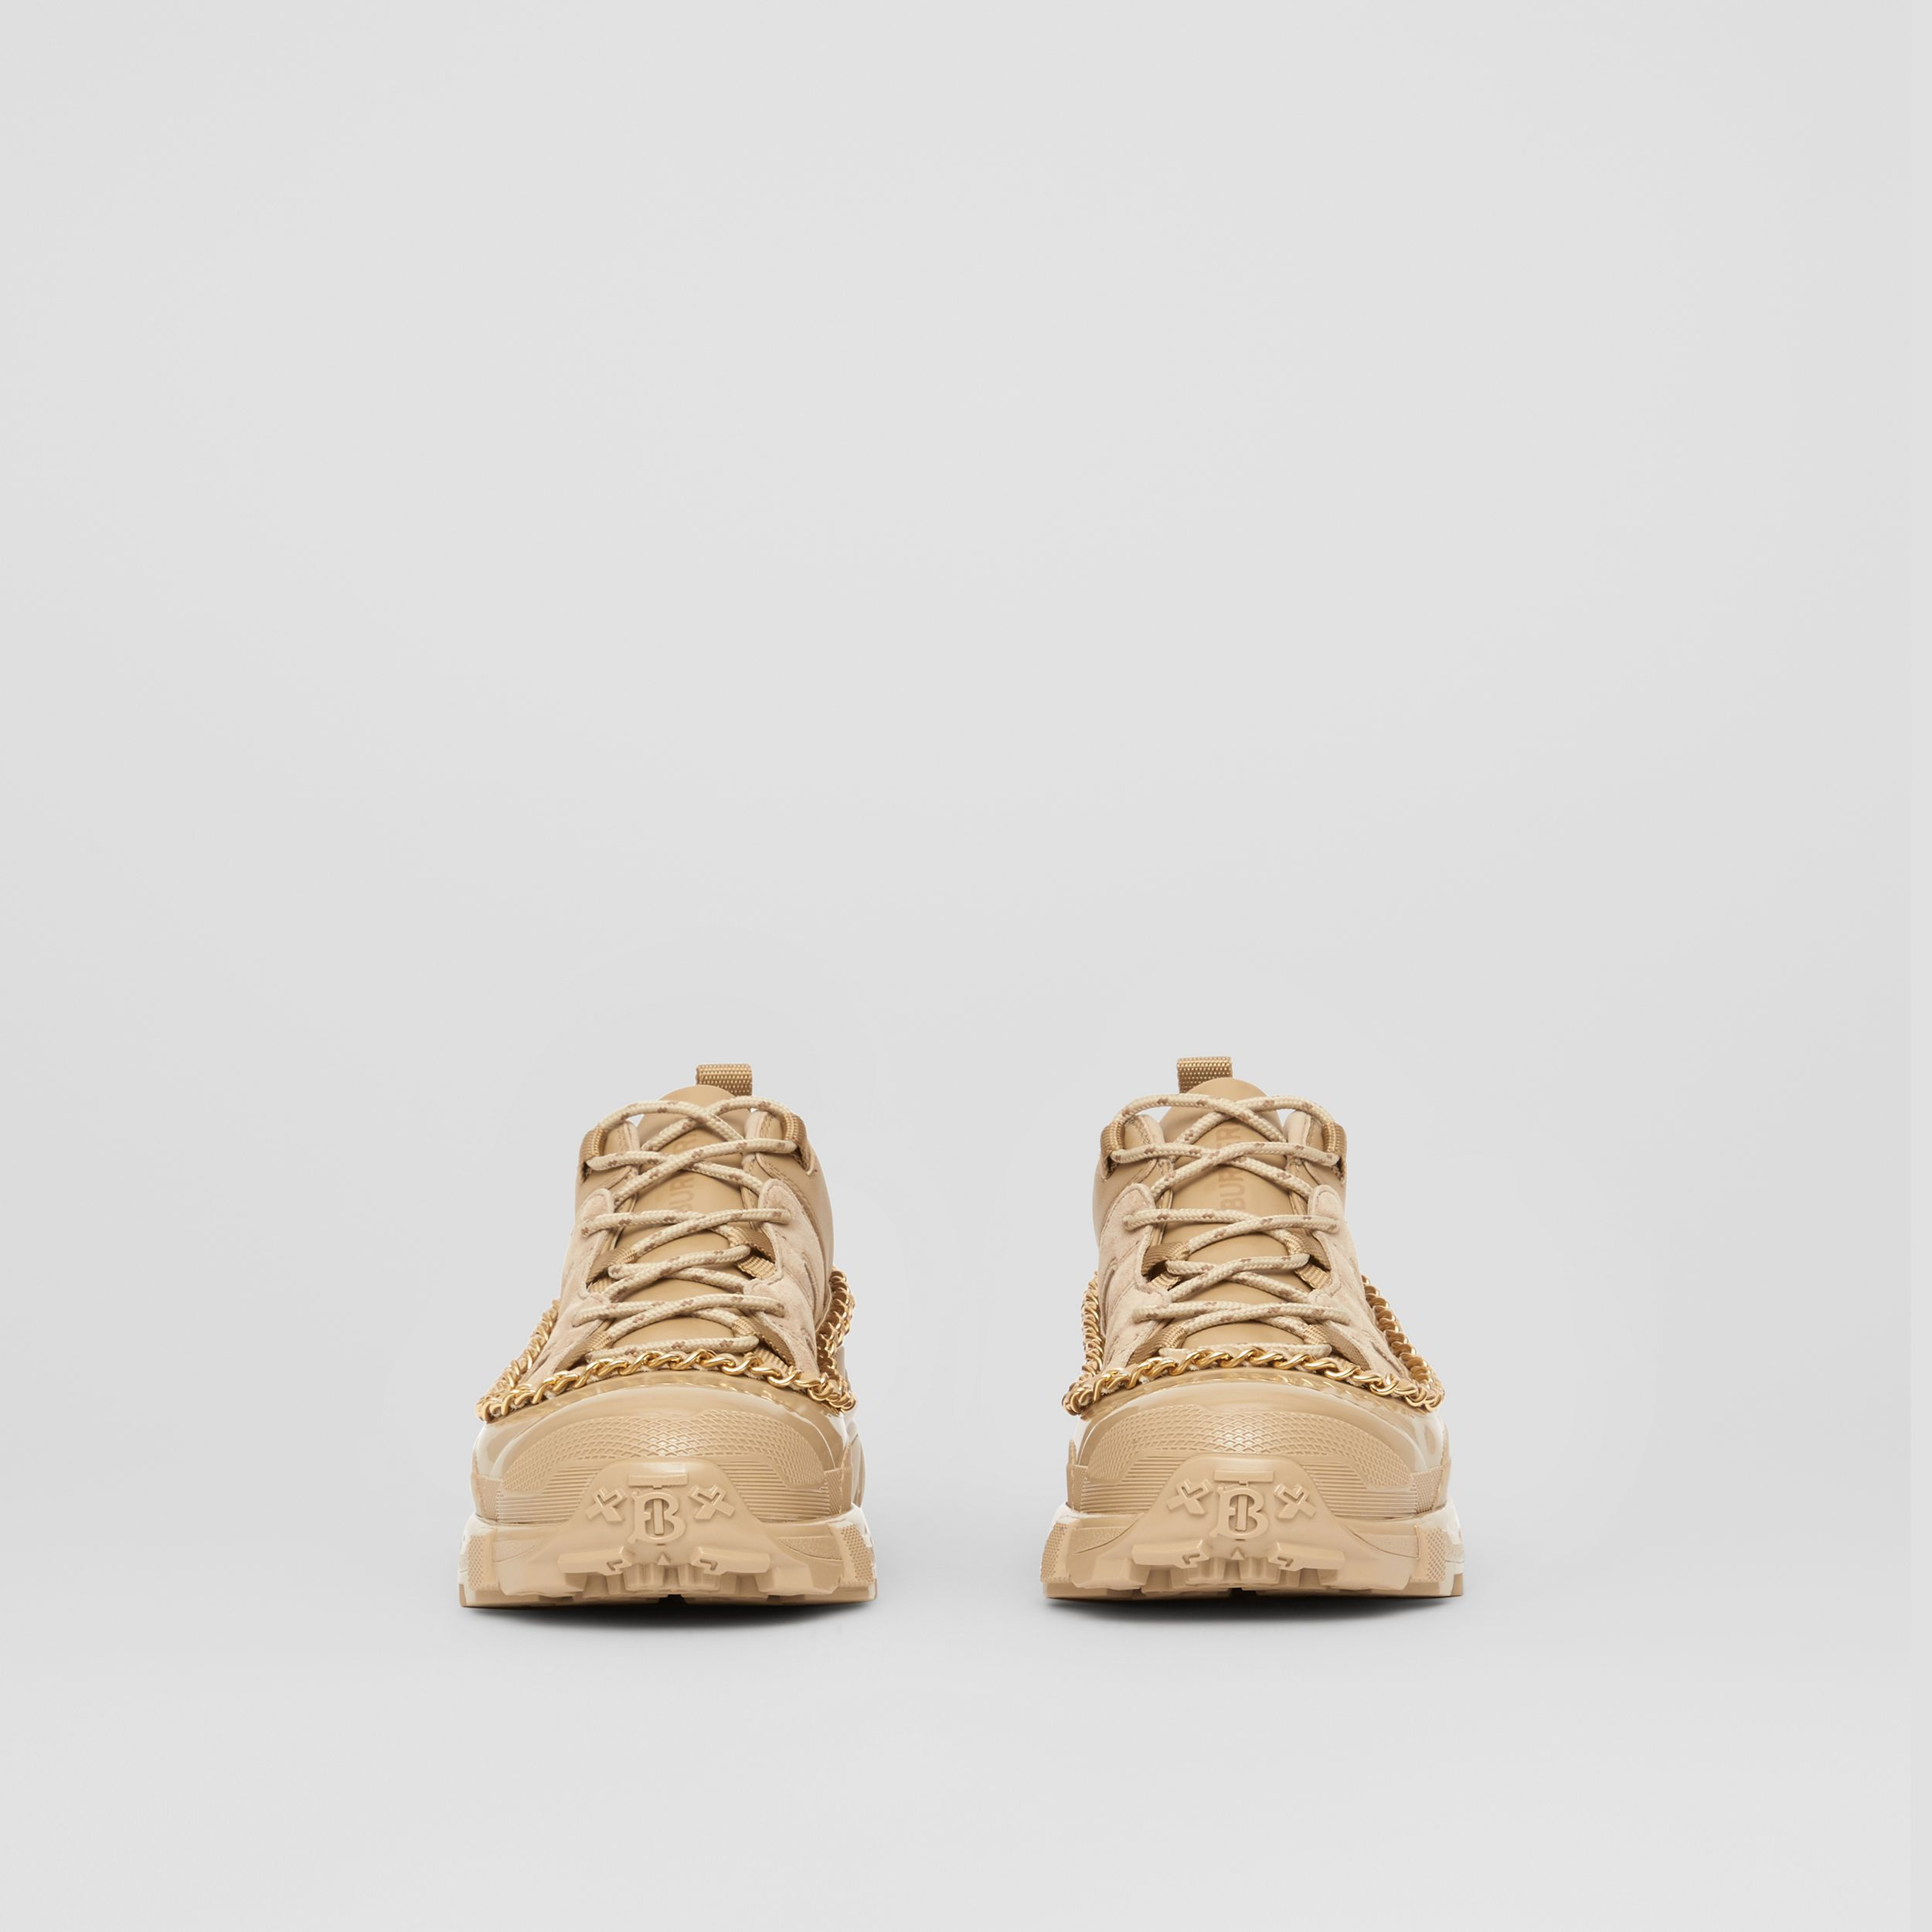 Chain Detail Suede and Leather Arthur Sneakers in Honey - Women | Burberry - 4